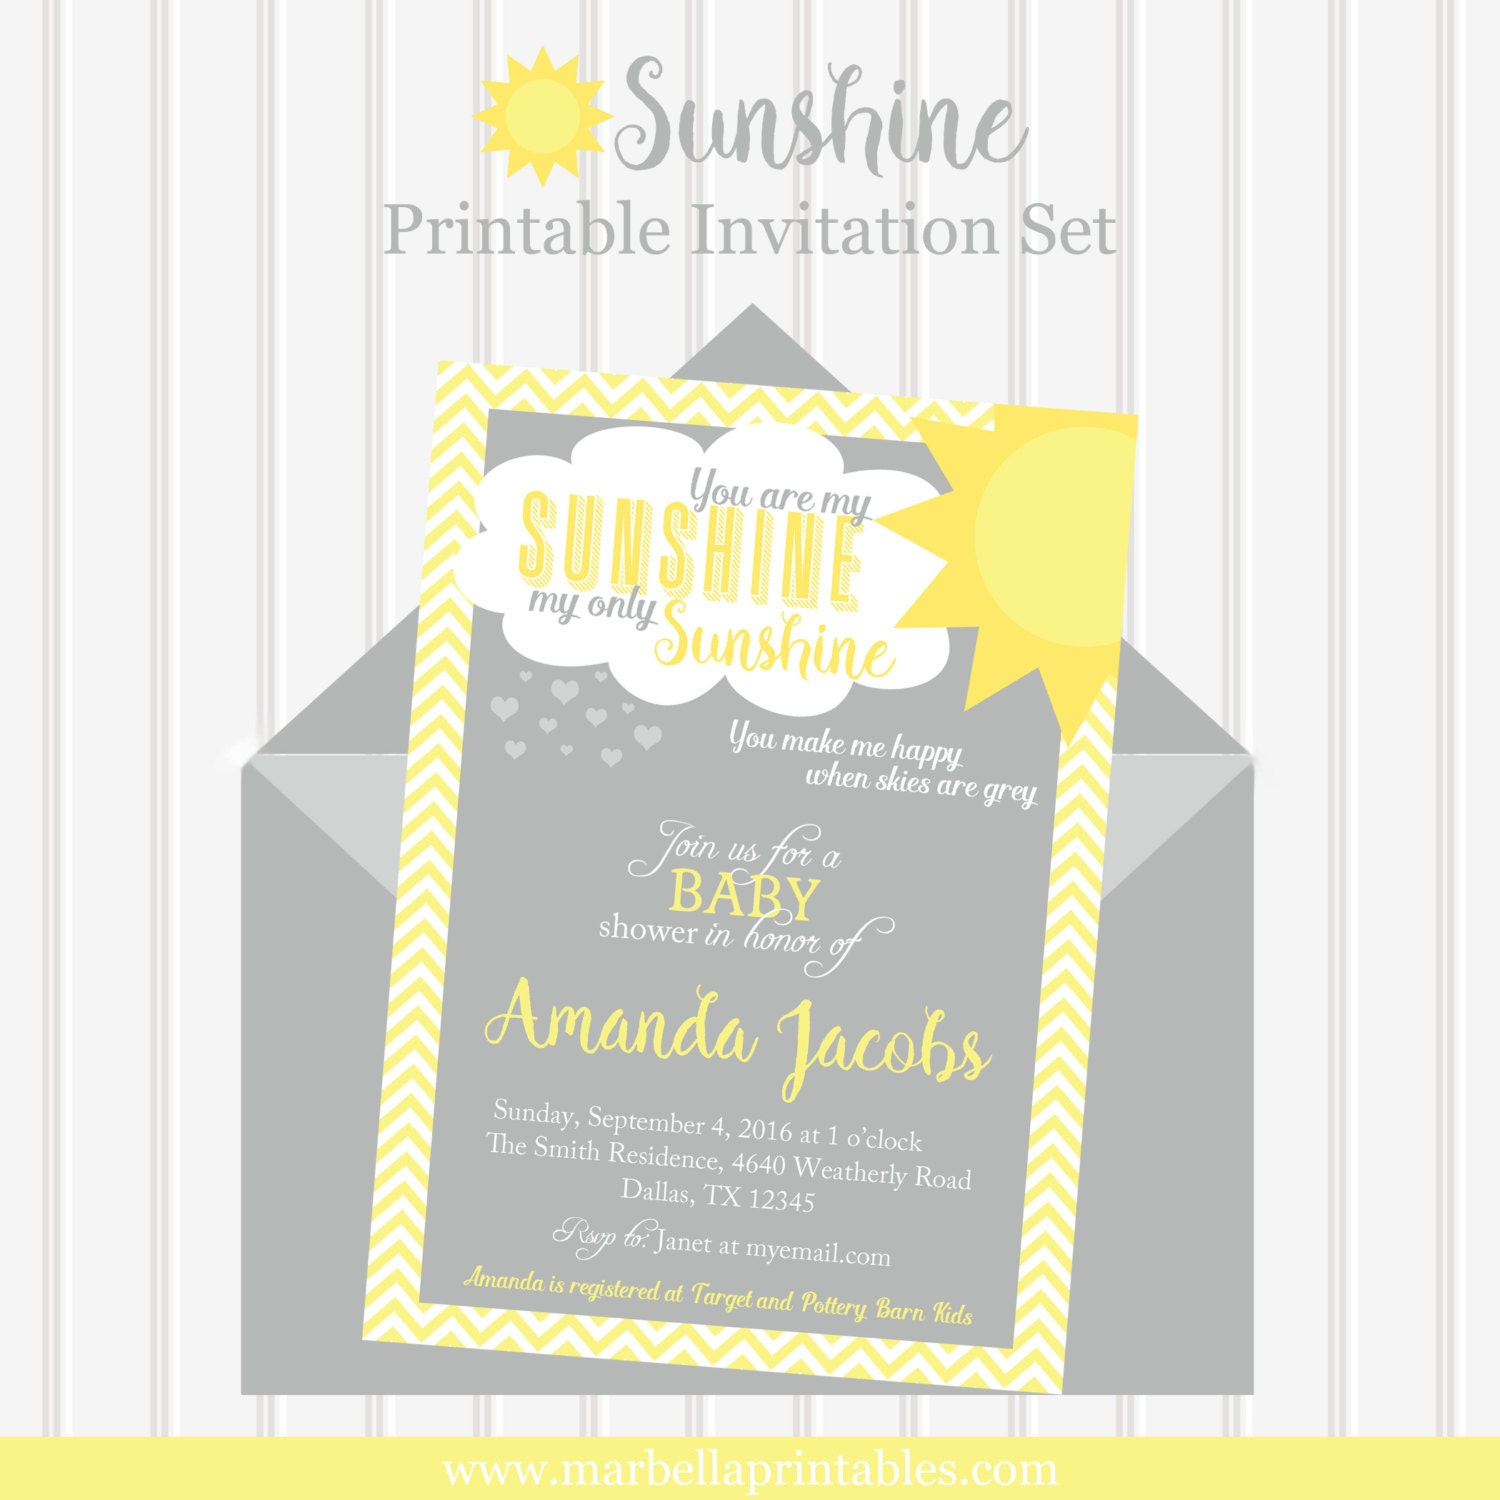 You Are My Sunshine Invitation You Are My Sunshine Baby Shower